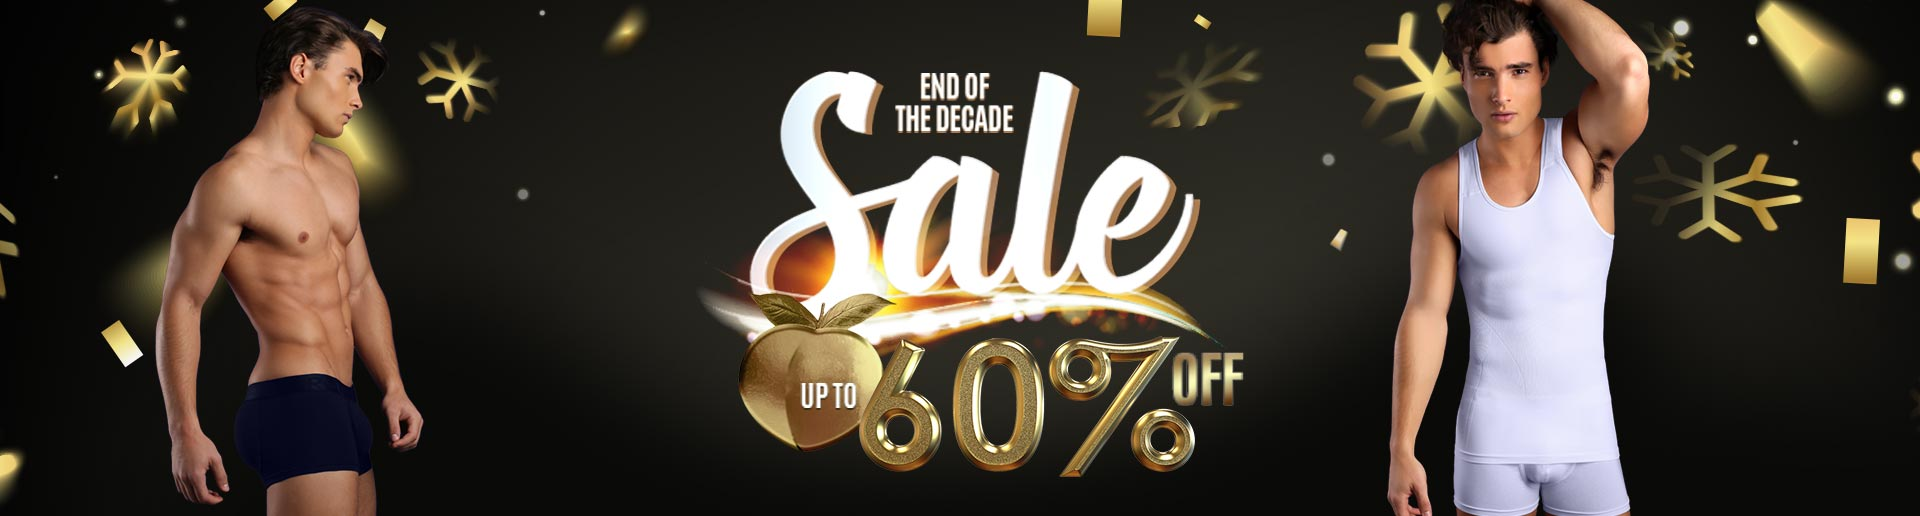 end of the decade sale